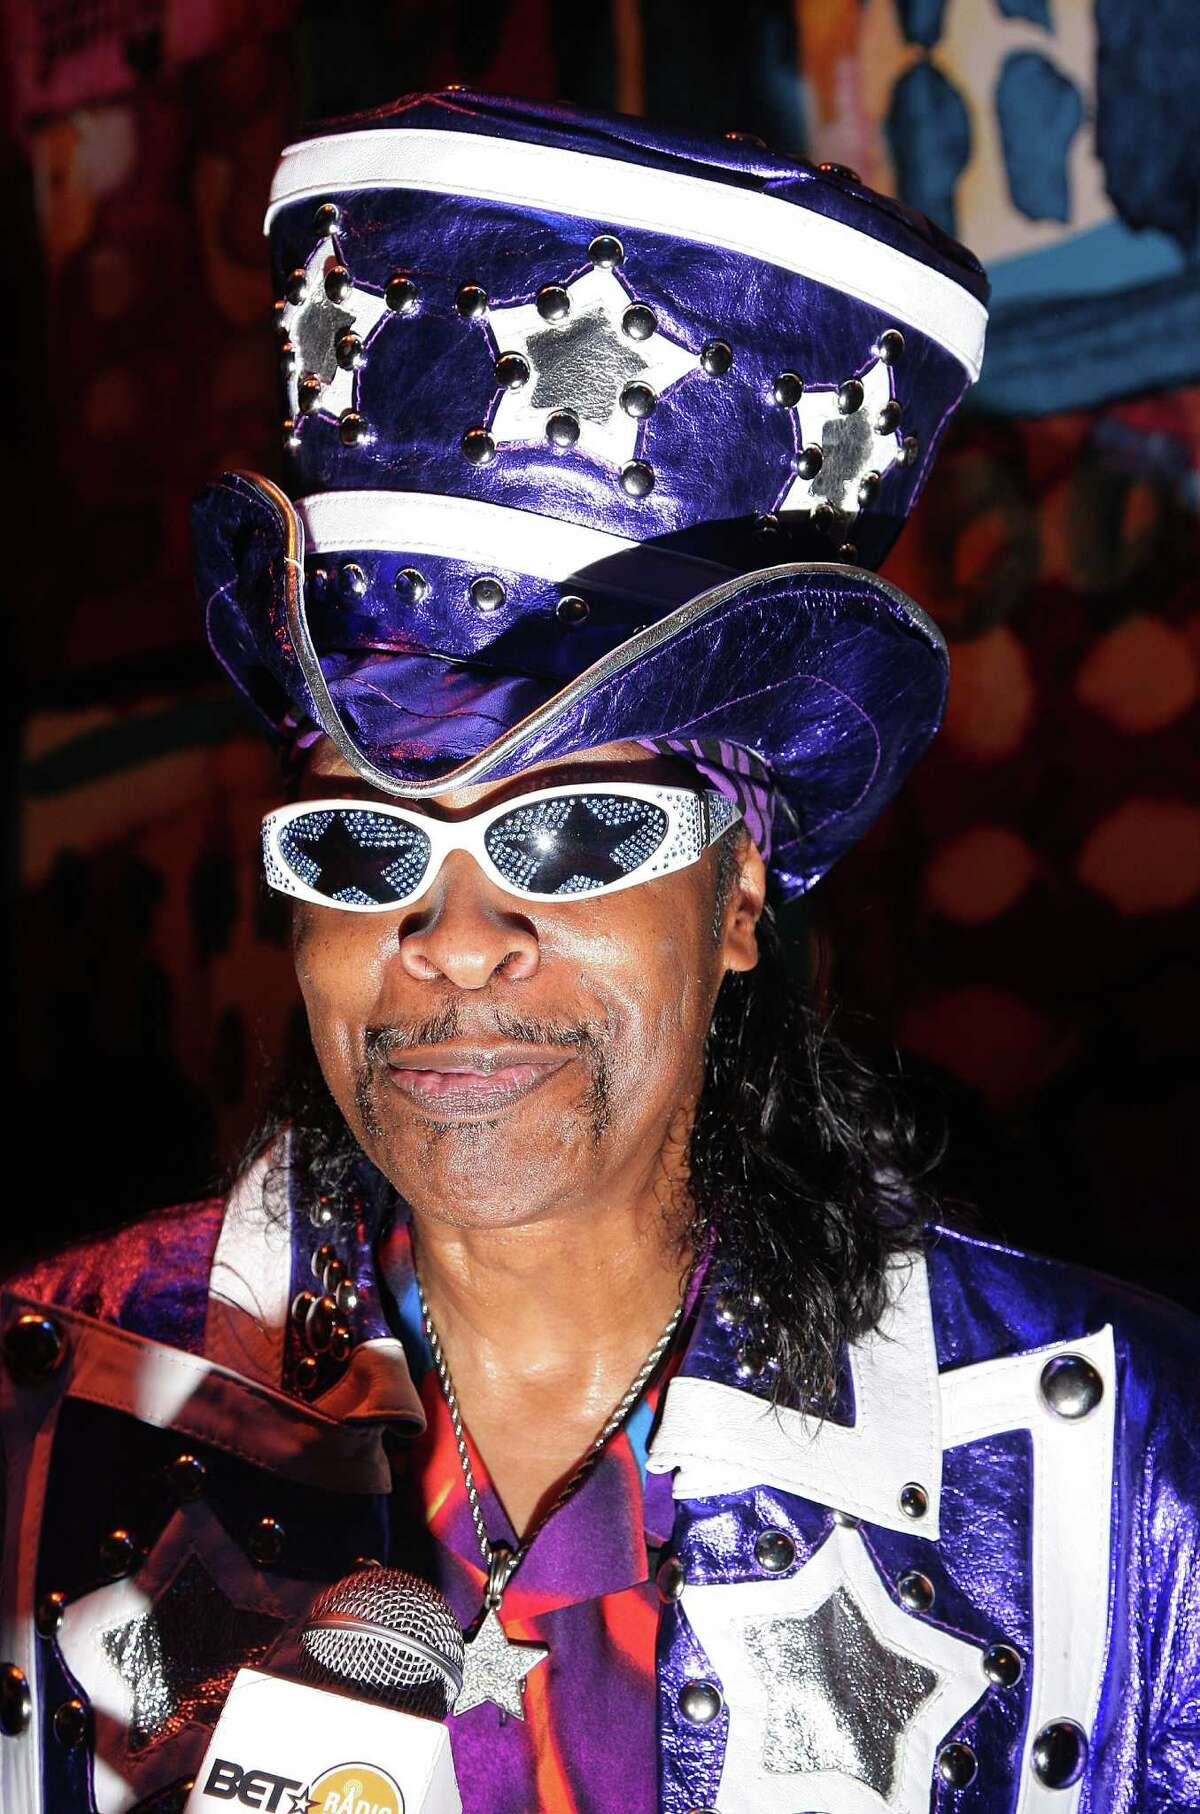 NEW YORK - SEPTEMBER 10: Musician Bootsy Collins attends the BMI Urban Awards at Jazz at Lincoln Center on September 10, 2009 in New York City. (Photo by Michael Loccisano/Getty Images for BMI)